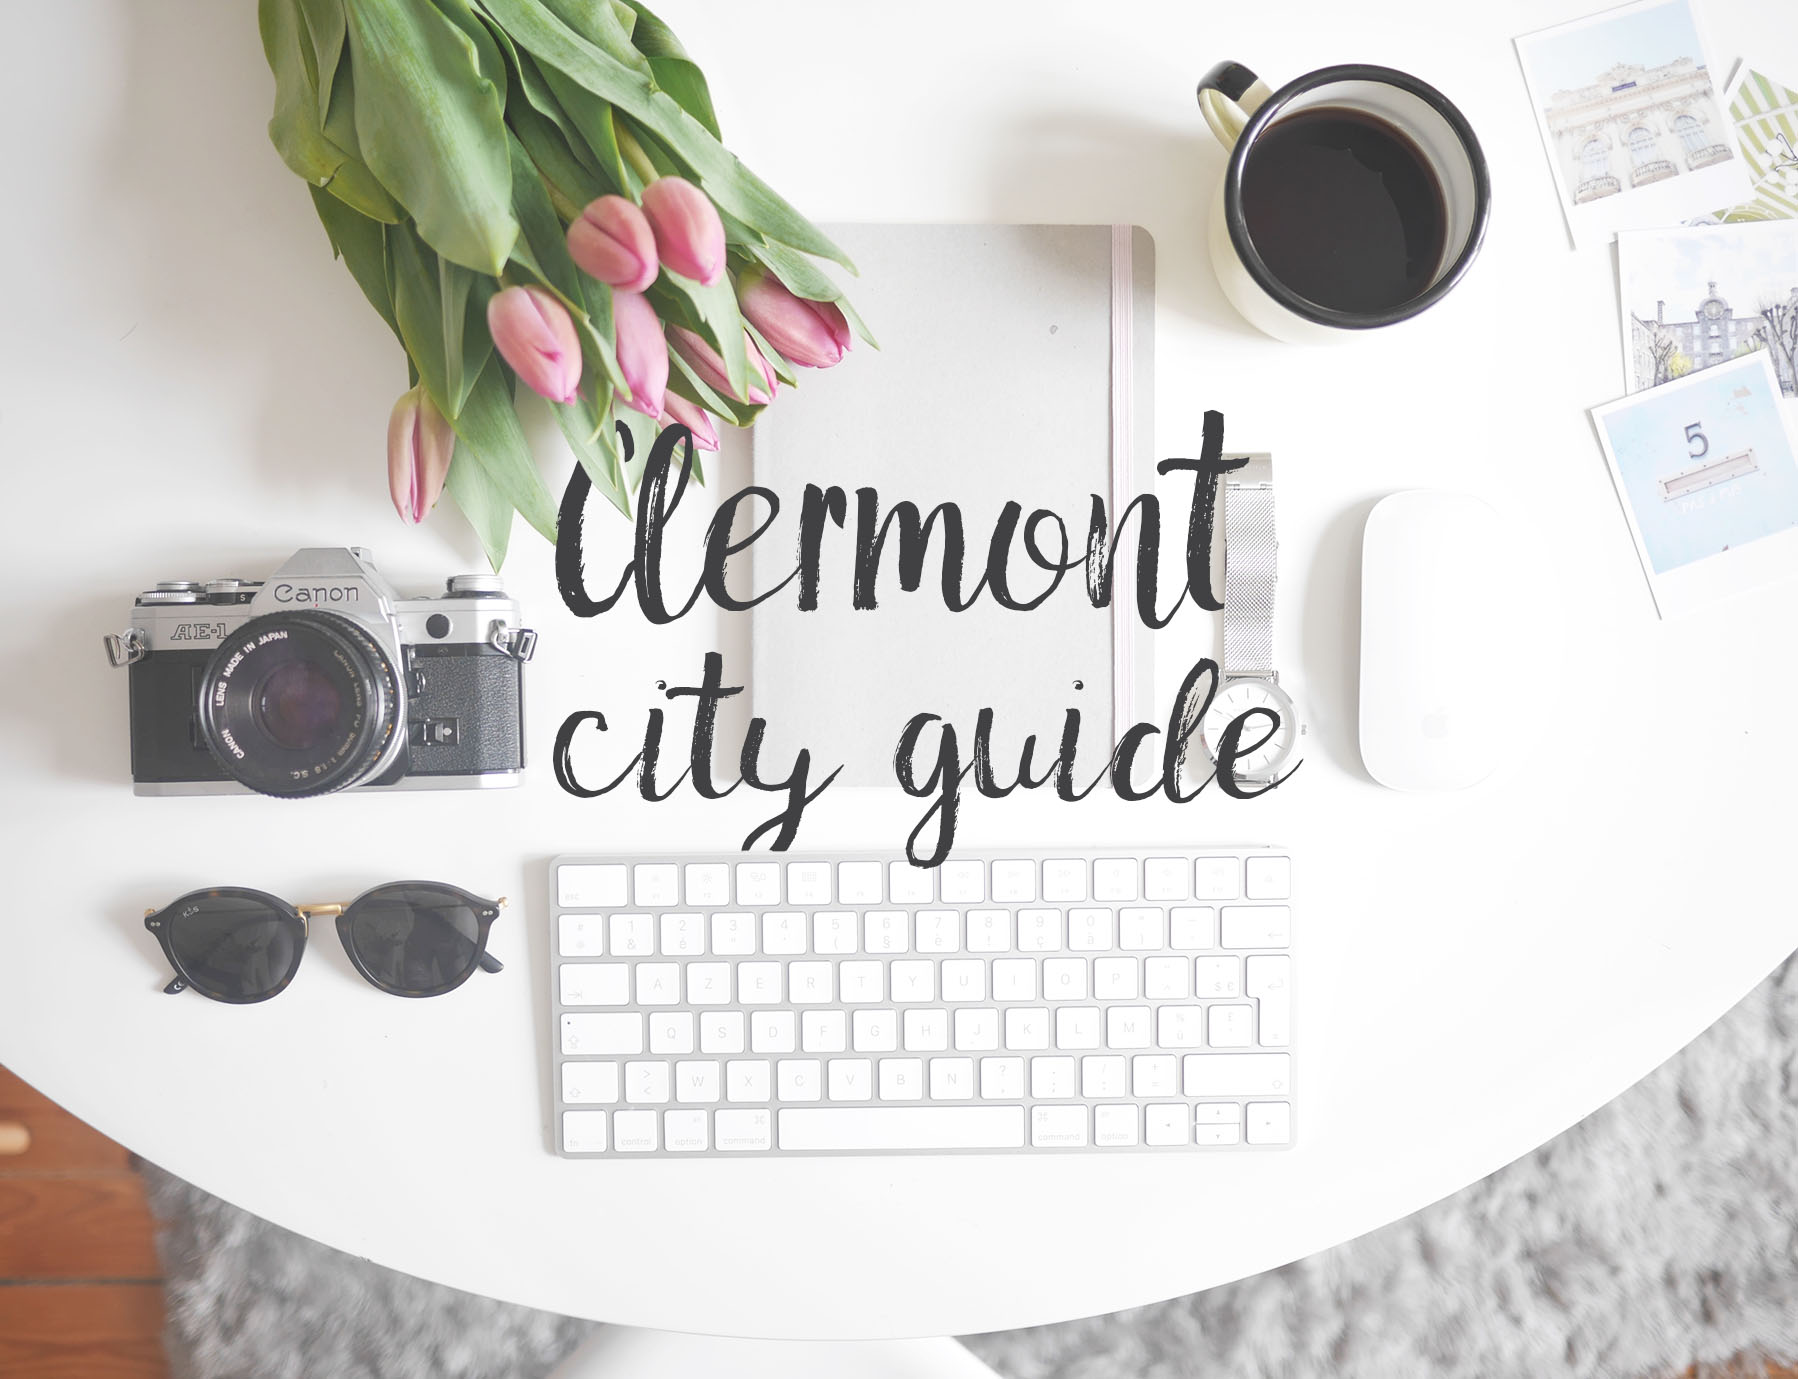 Mon Clermont City Guide